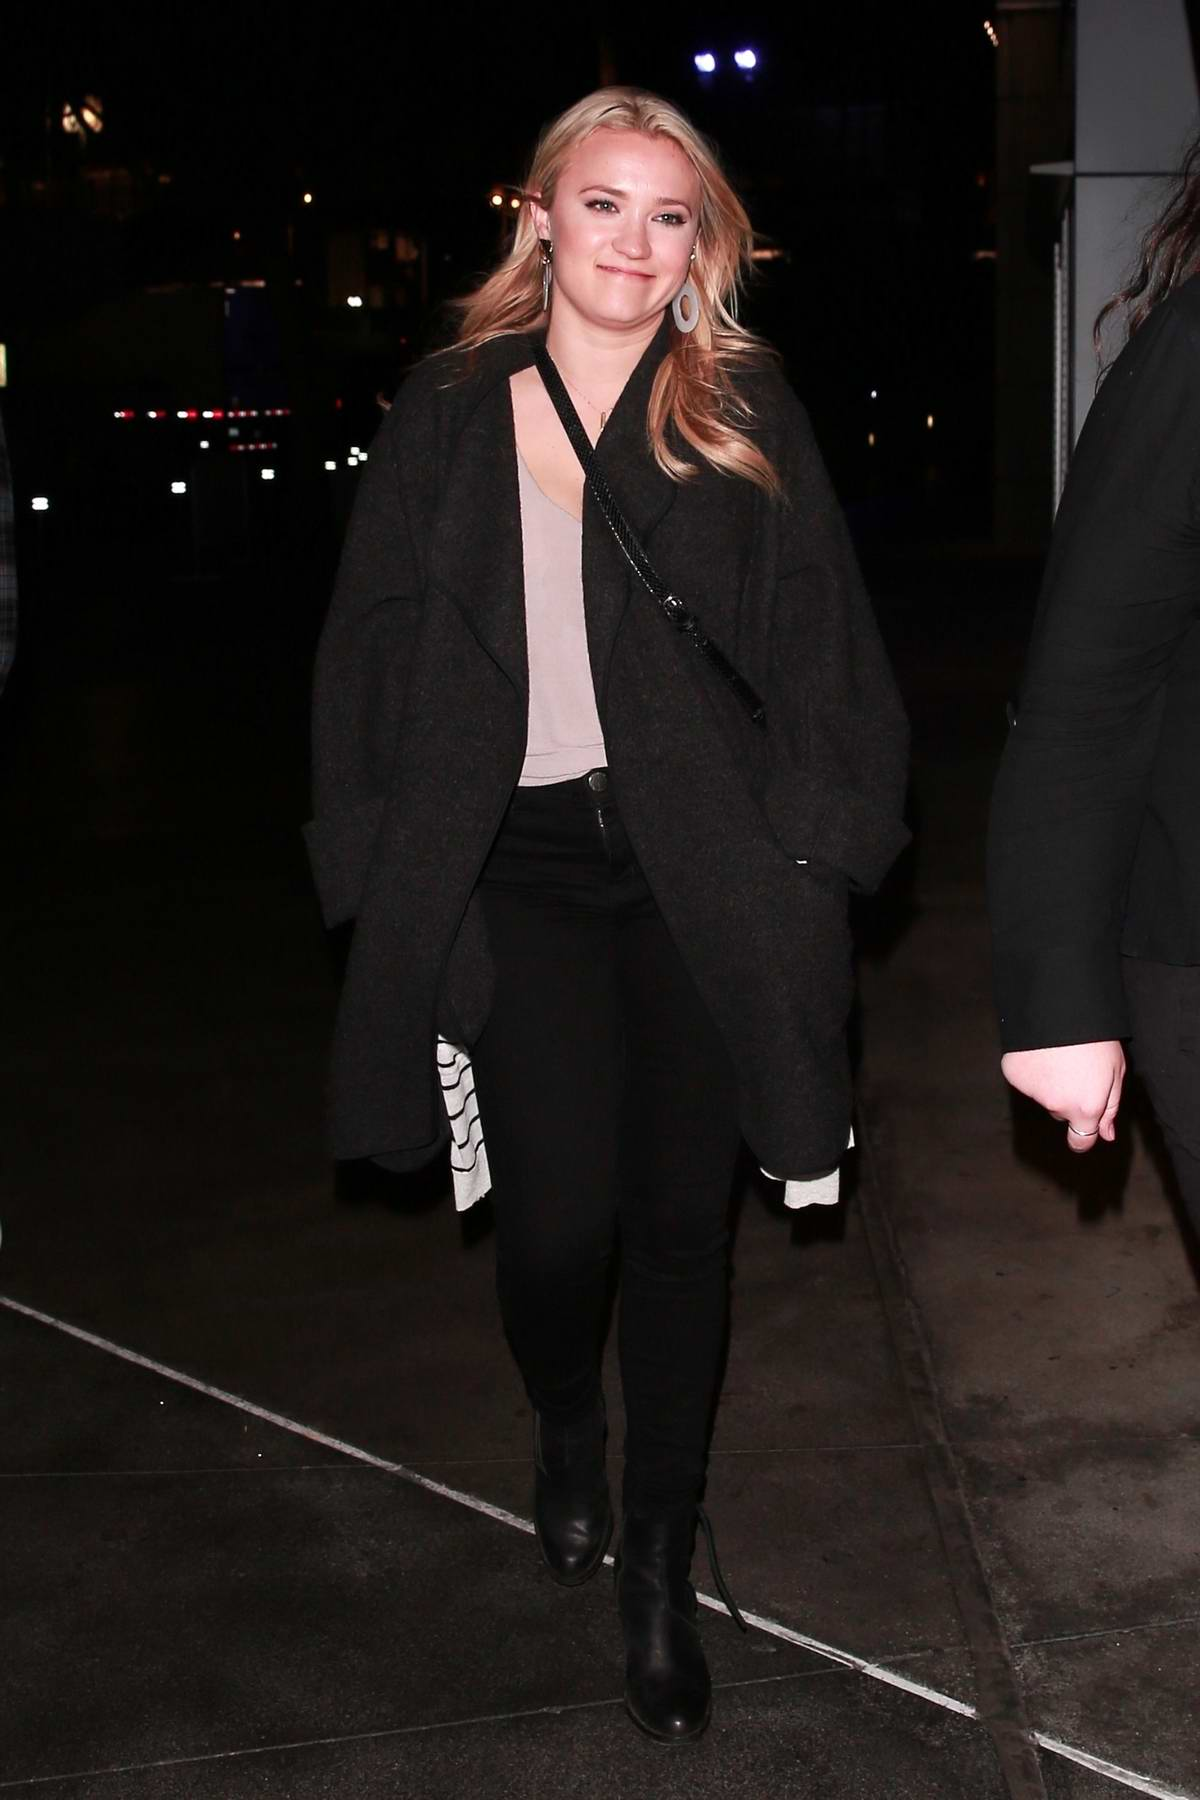 Emily Osment heading to the Elton John concert at the Staples Center in Los Angeles